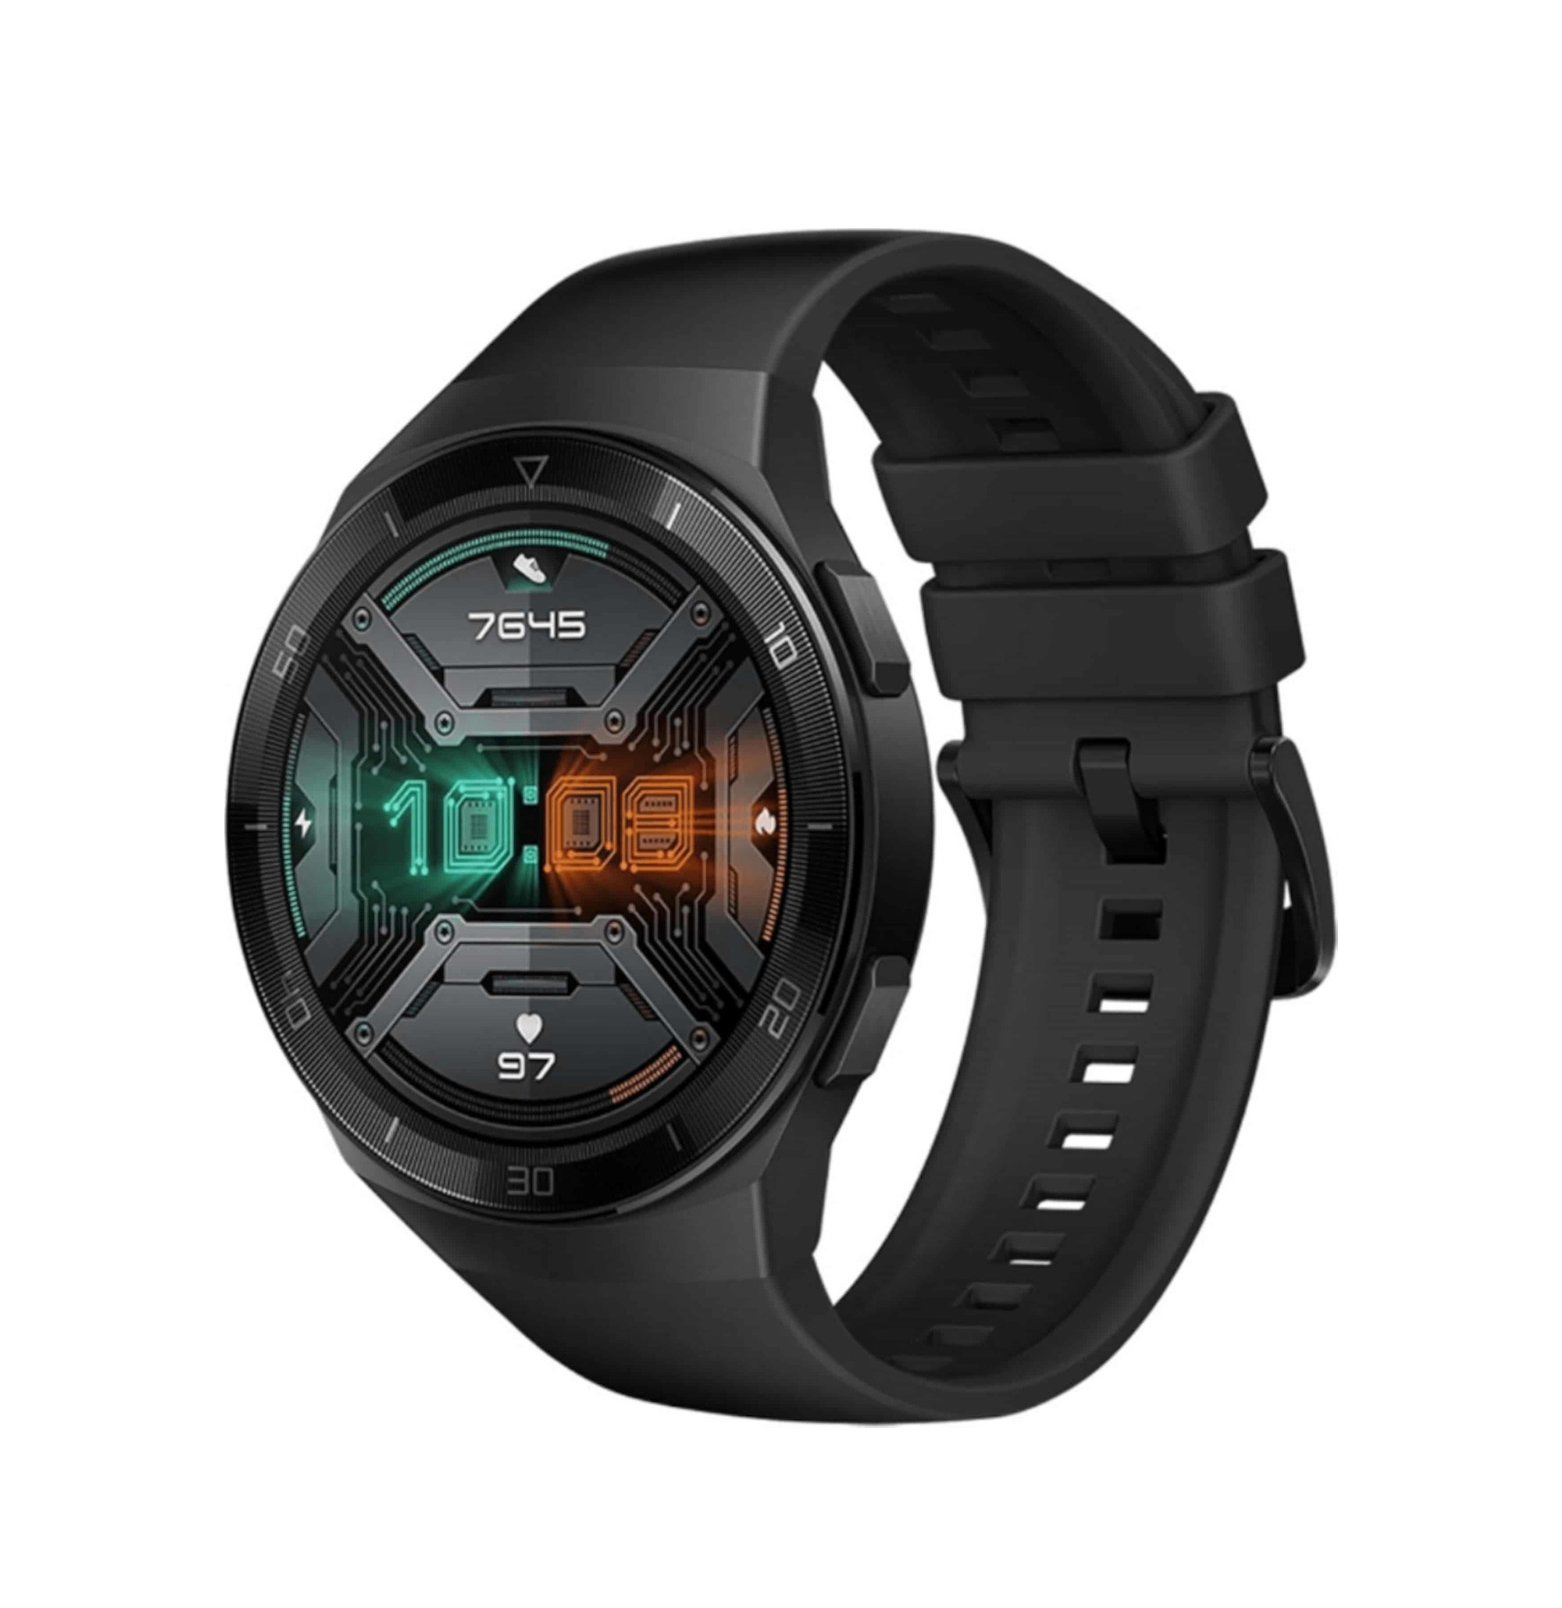 Huawei Watch GT 2e 46mm Graphite Black  55025278 Πληρωμή έως 24 δόσεις*